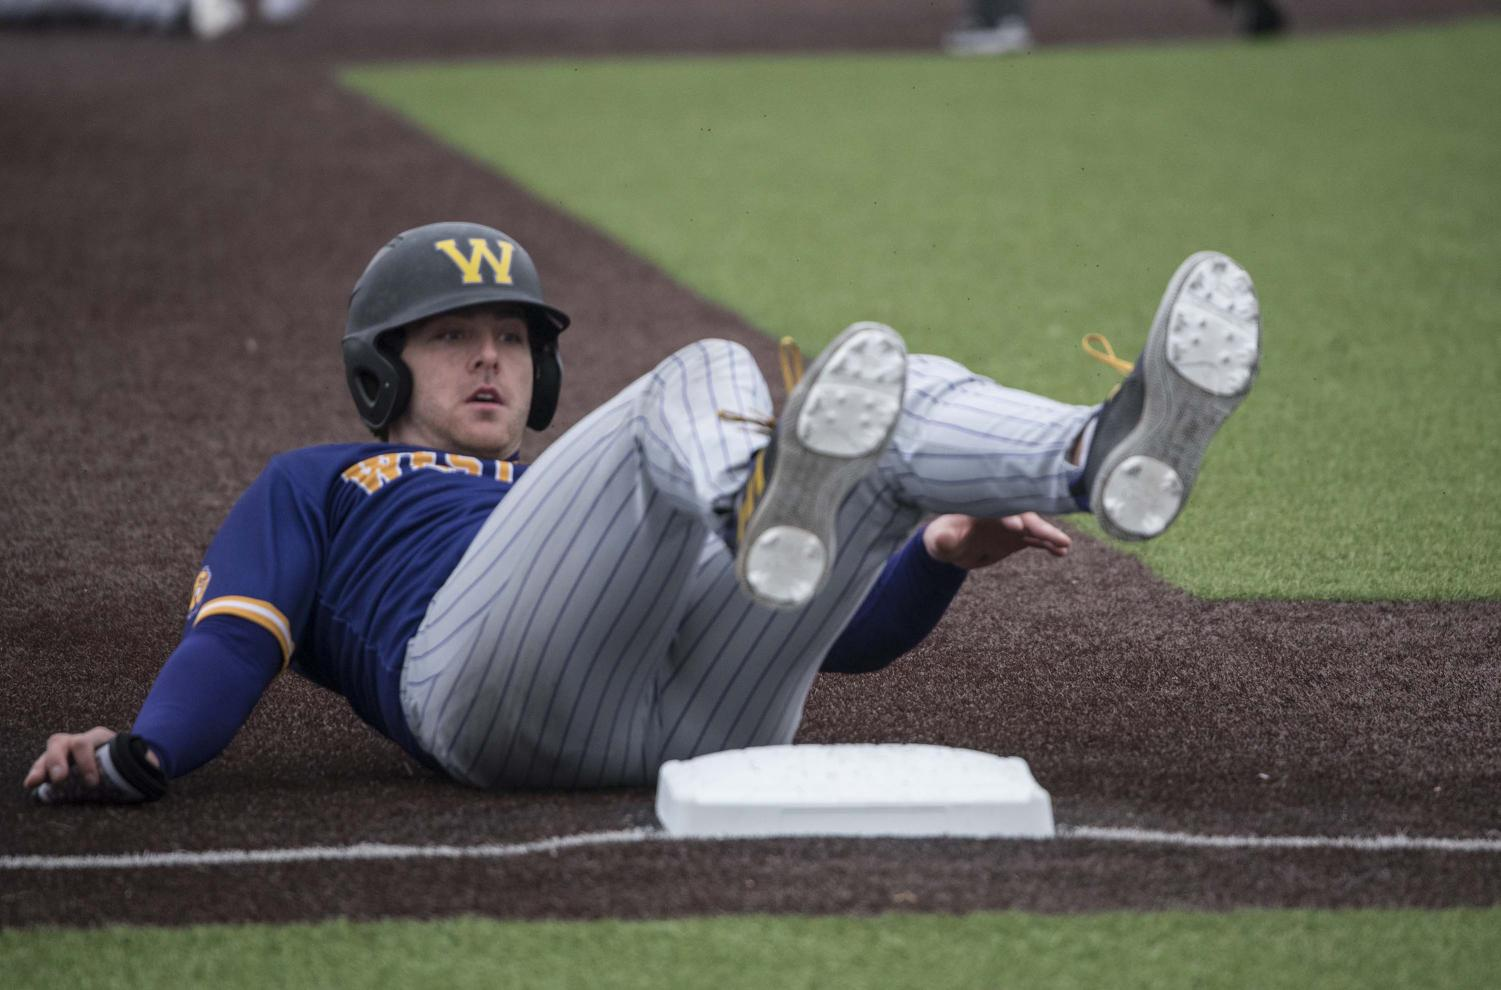 Western+Illinois+Leatherneck+CJ+Schaeffer+Jr.+slides+onto+third+base+during+the+fourth+inning++on+Friday%2C+March+1%2C+2019+during+the+Salukis%27+8-1+win+against+Western+Illinois.